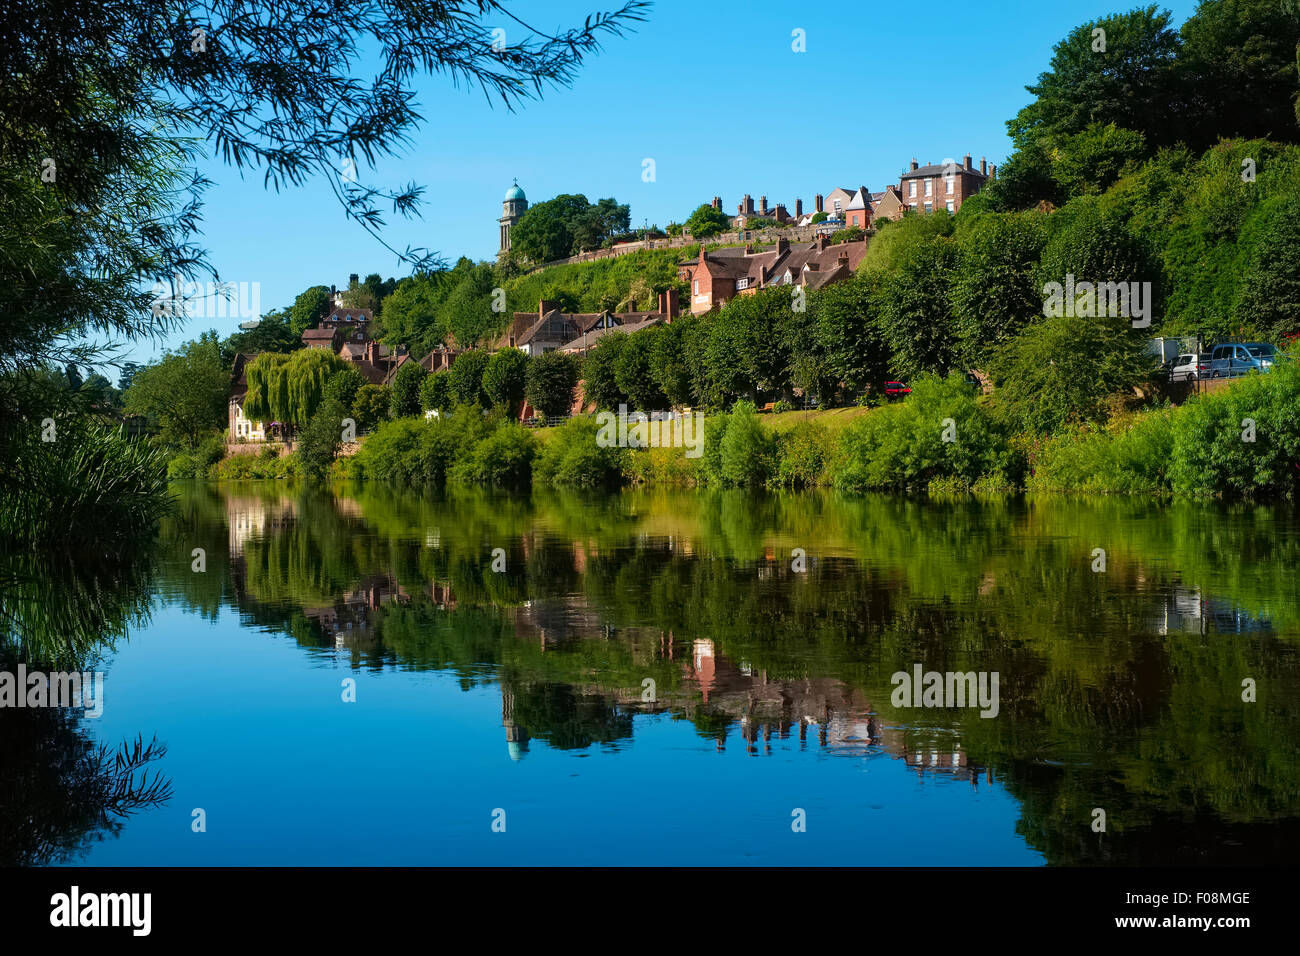 The Shropshire town of Bridgnorth reflected in the River Severn. - Stock Image